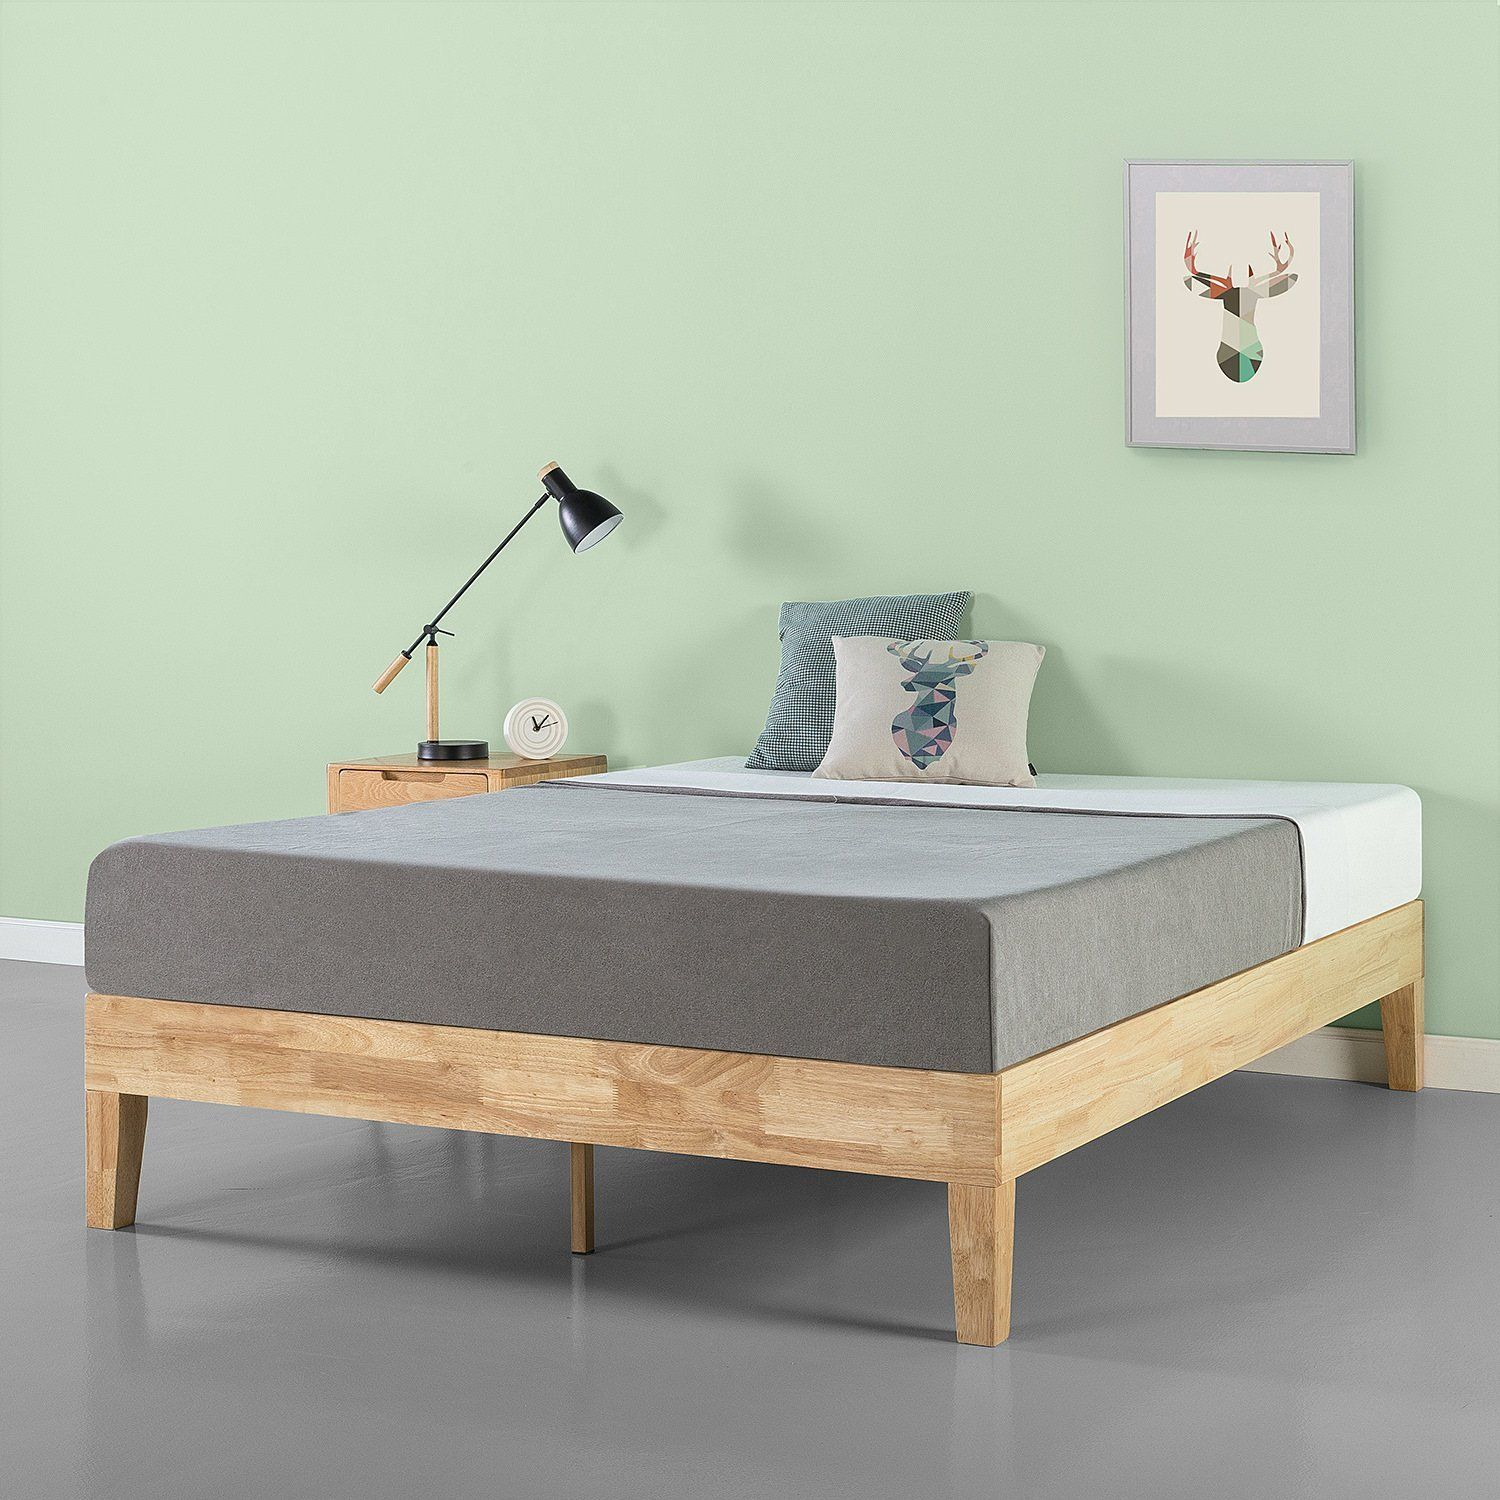 189 Amazon Queen Bed Frame No Headboard Solid Wood Platform Bed Buy Bed Frame Wood Platform Bed No box spring bed frame